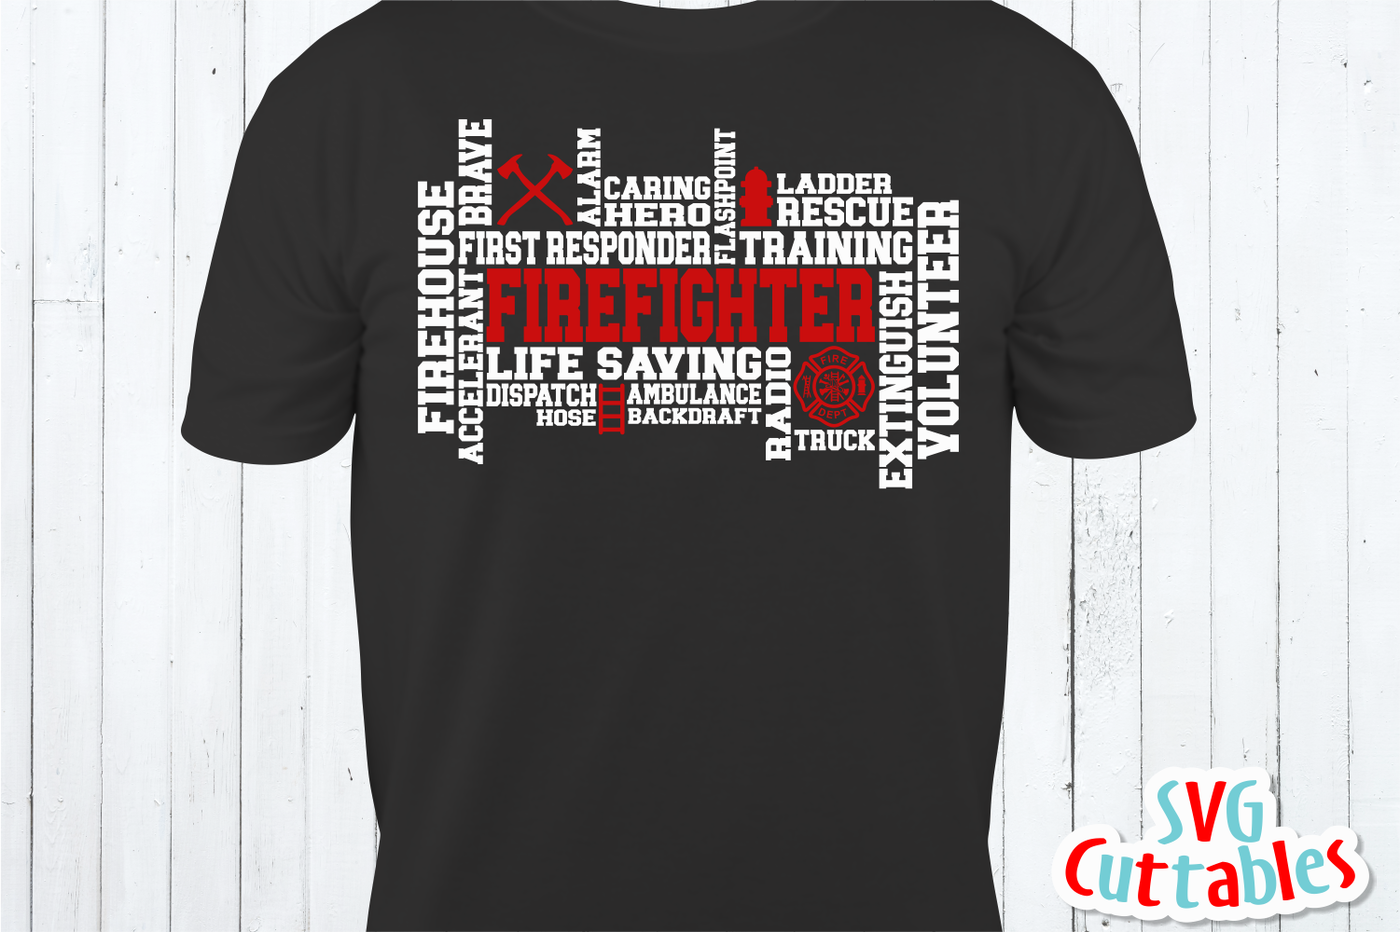 Firefighter Word Art Cut File By Svg Cuttables Thehungryjpeg Com